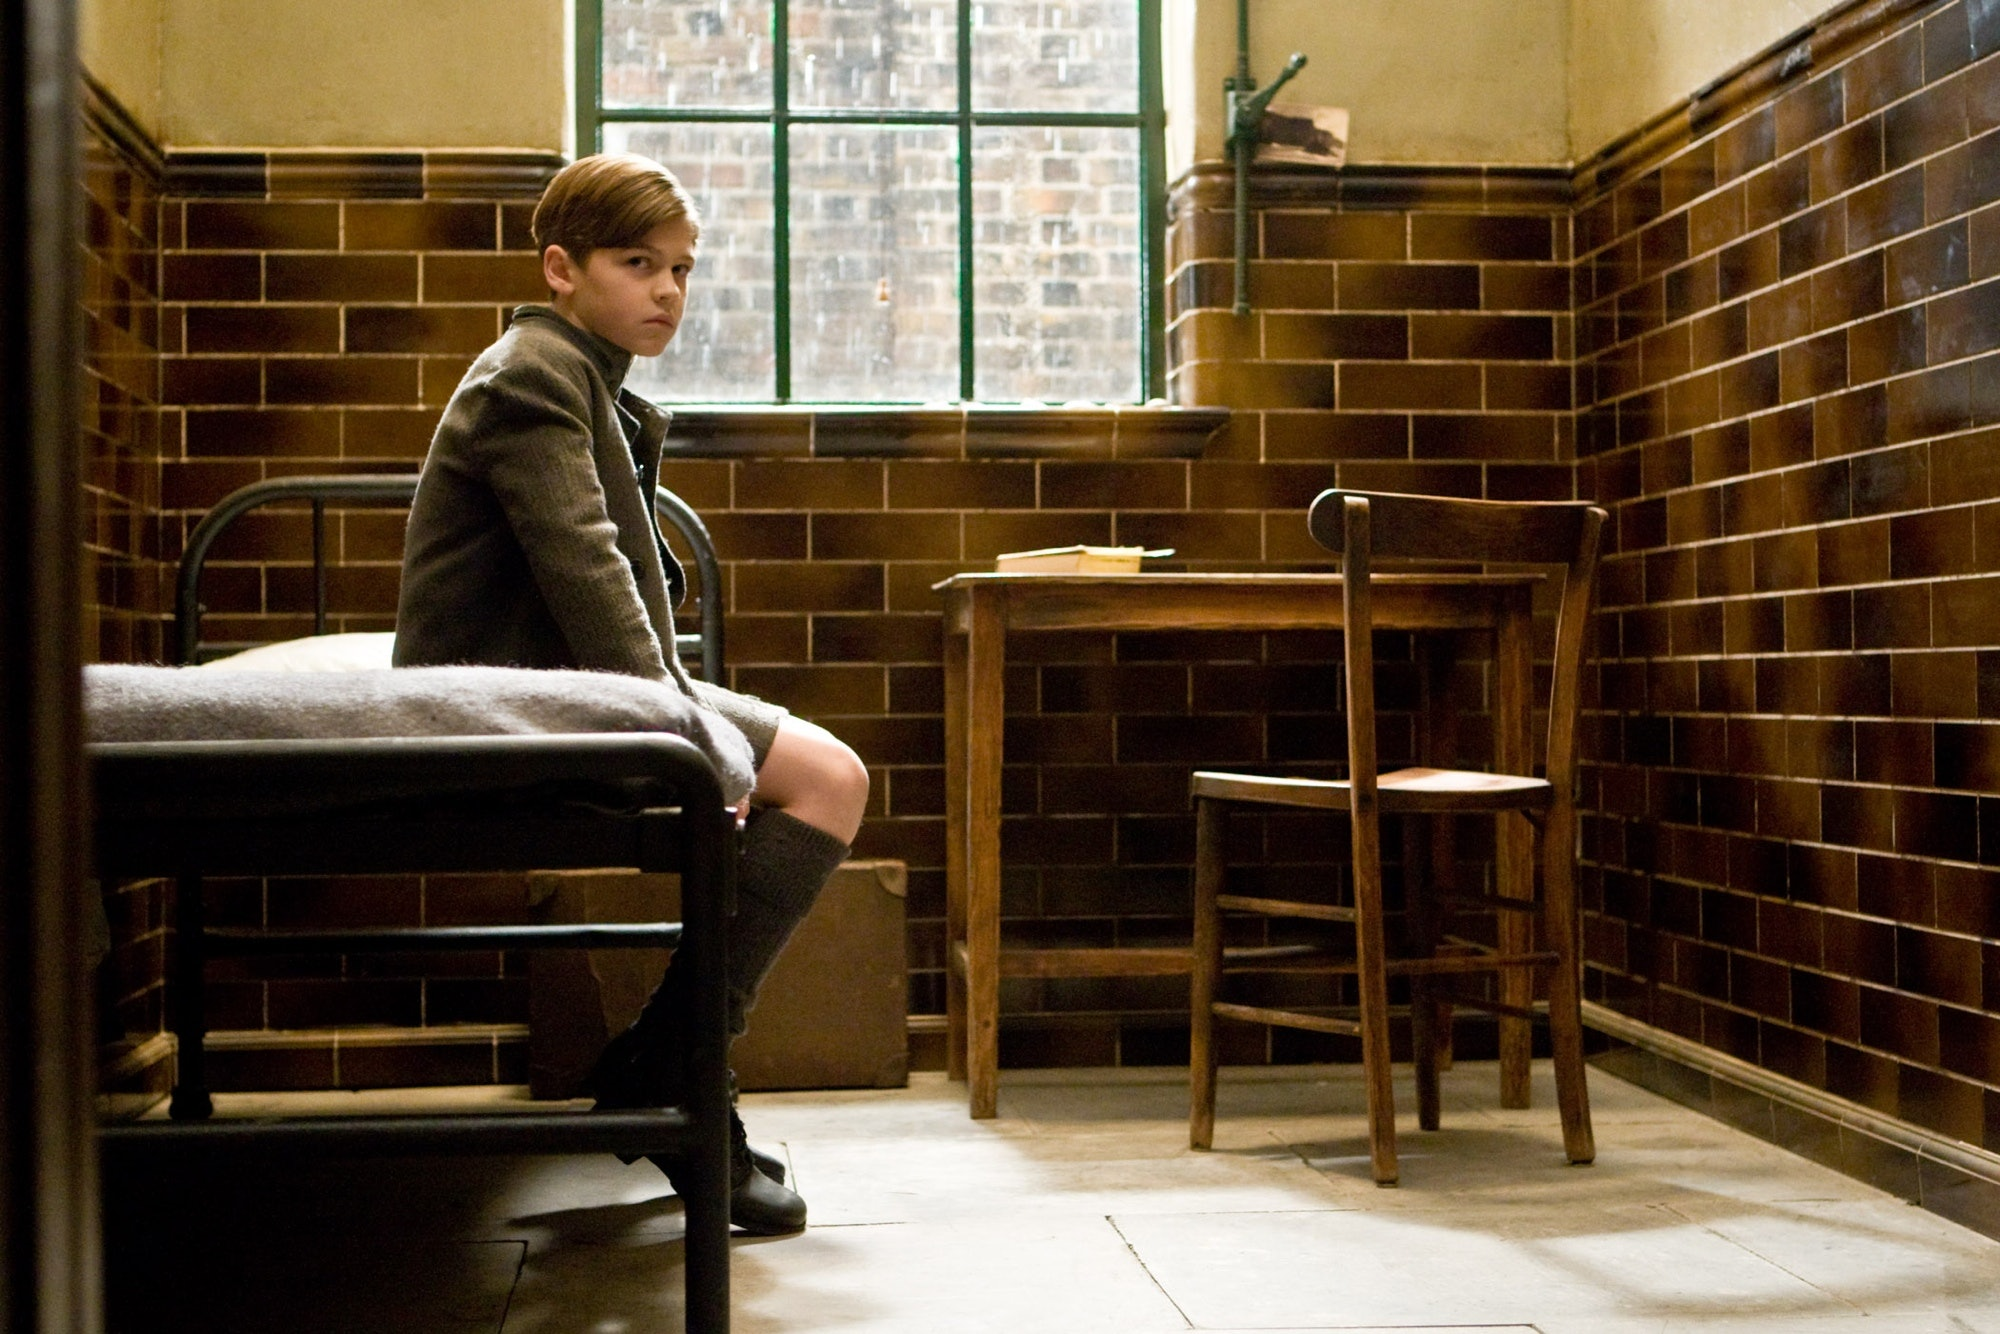 The Unexpected Way 'Harry Potter' Perpetuates Rape Culture